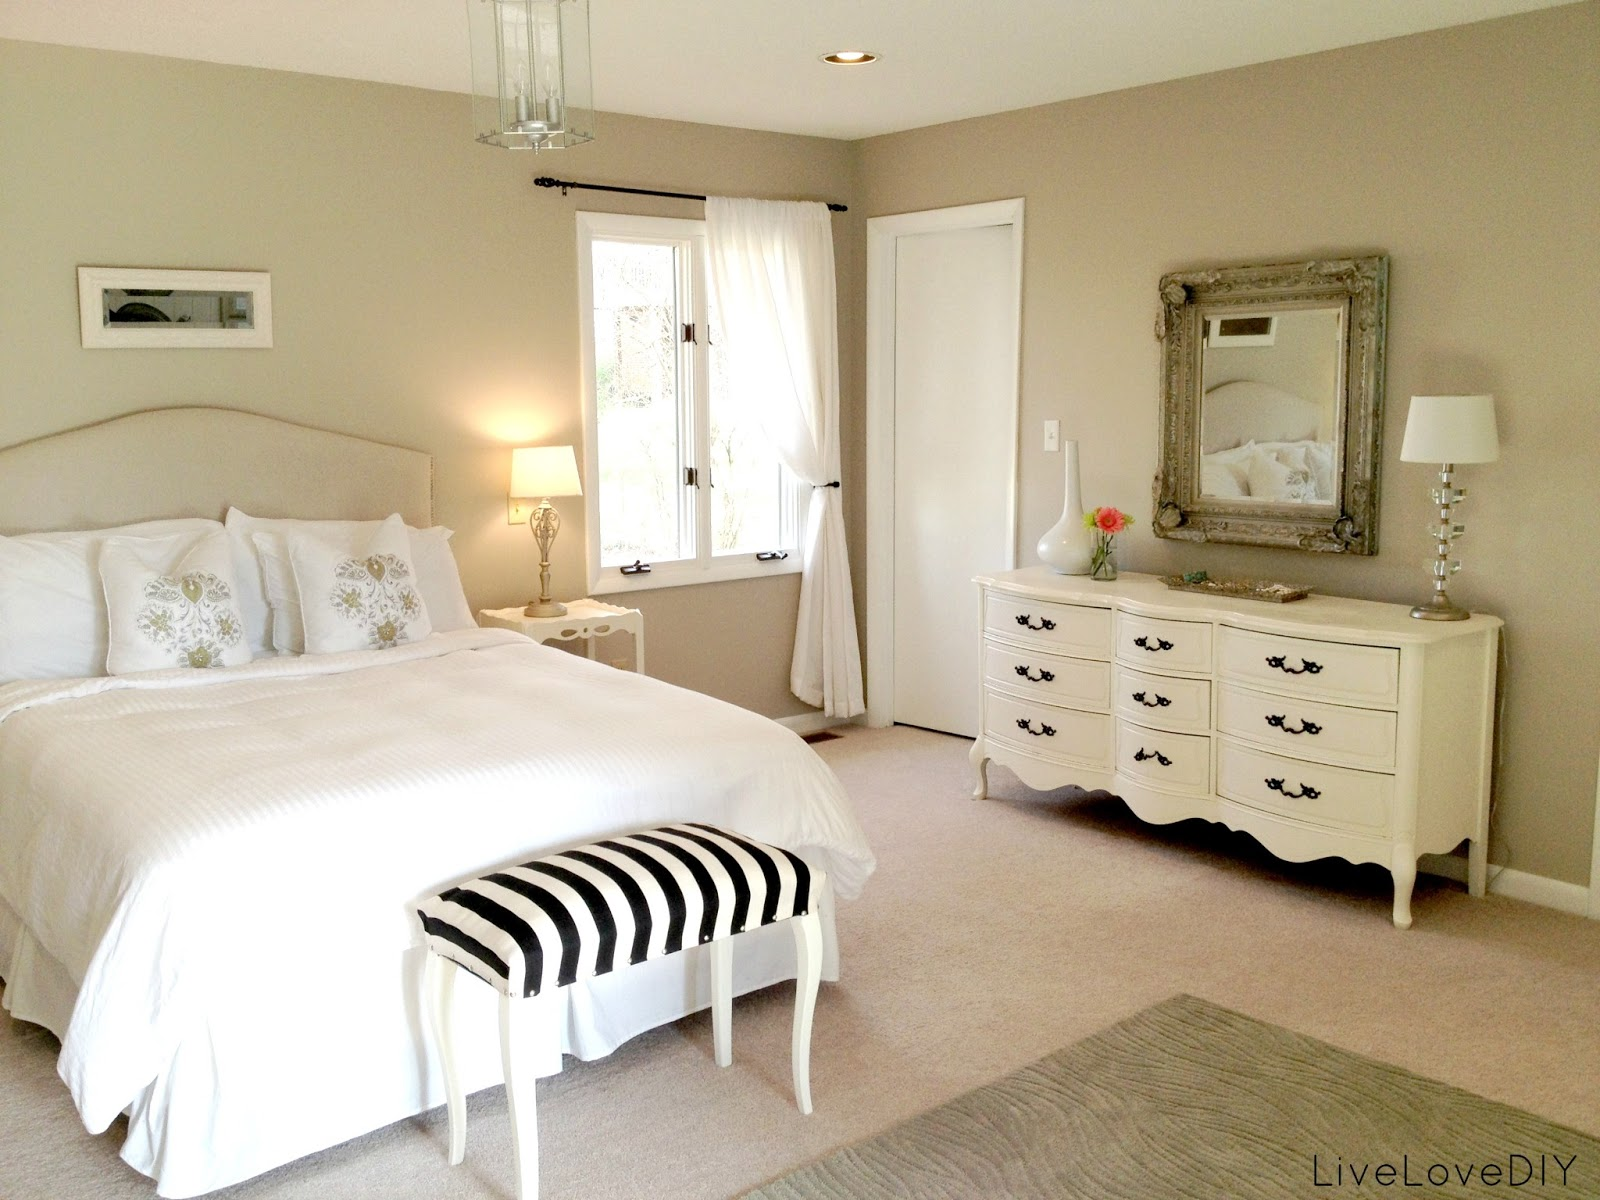 master bedroom furniture arrangement ideas photo - 1